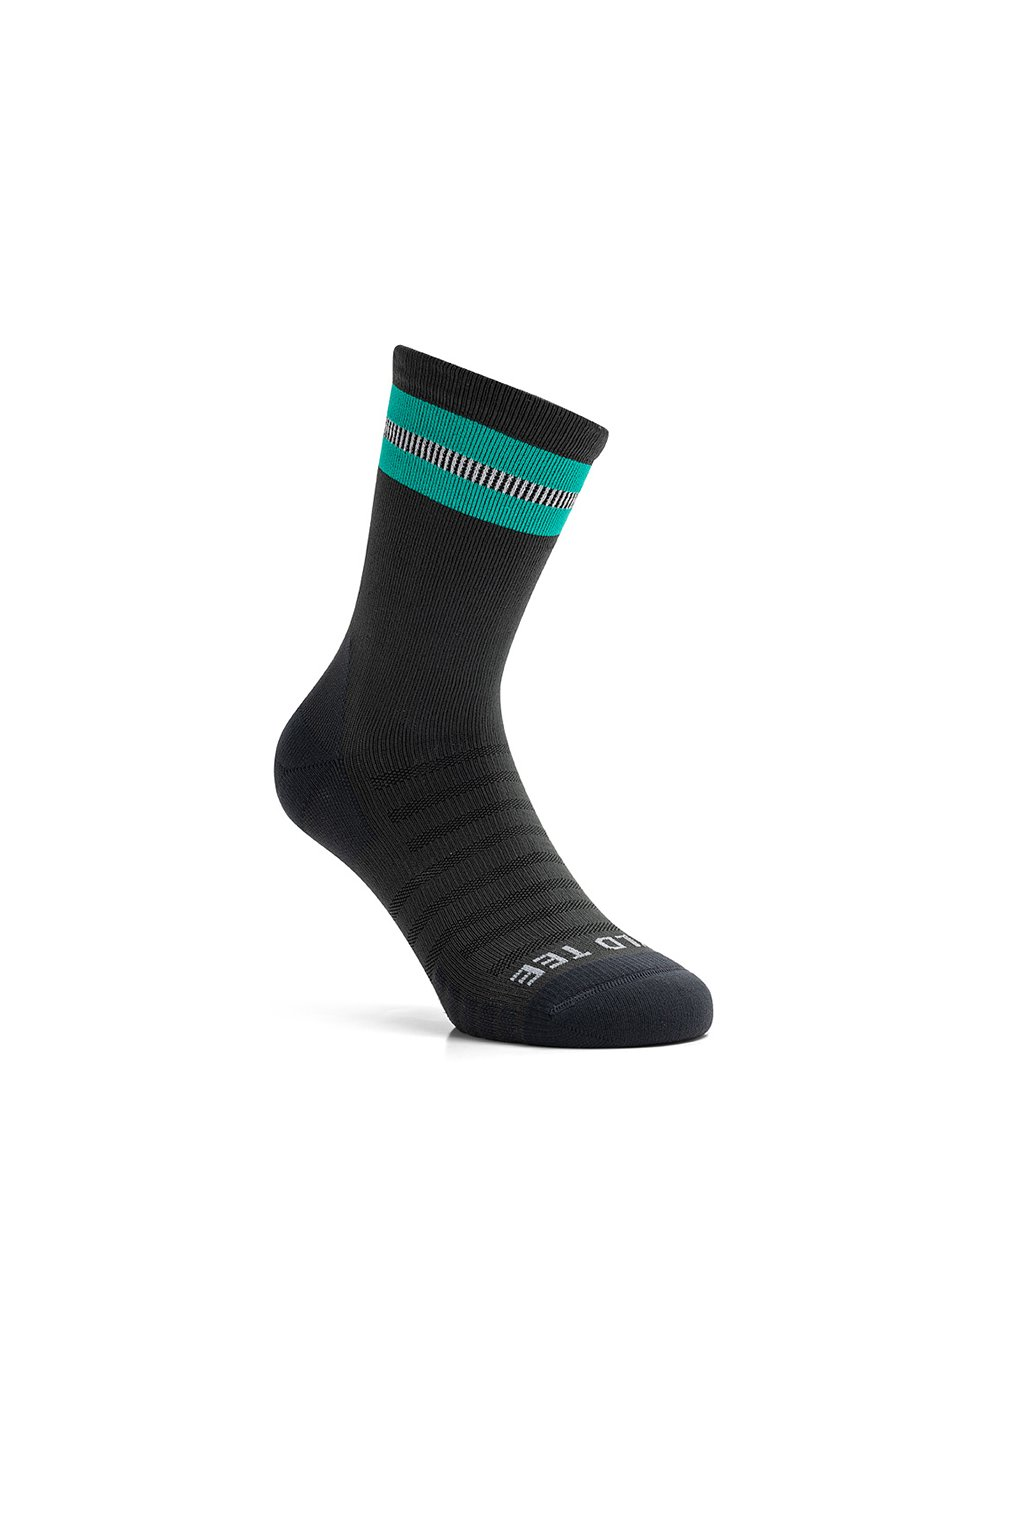 ROCKIES SOCKS GREEN Front